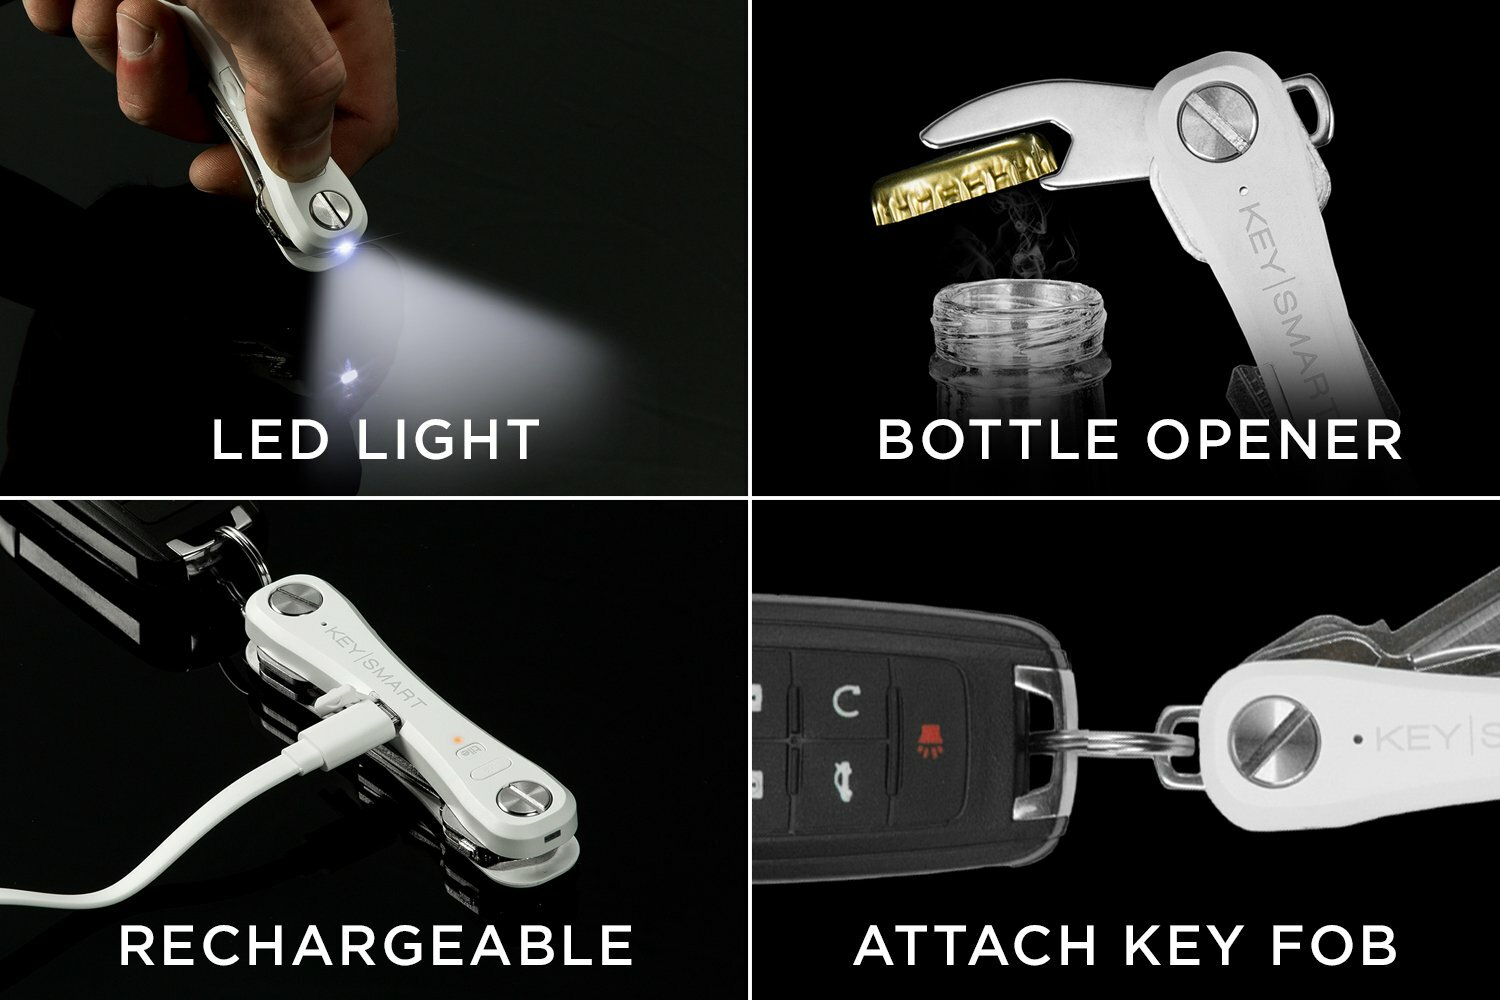 KeySmart Pro Compact Key Holder with LED Light and Tile Smart Technology to Track your Lost Keys and Phone with GPS 2-10 Keys, White